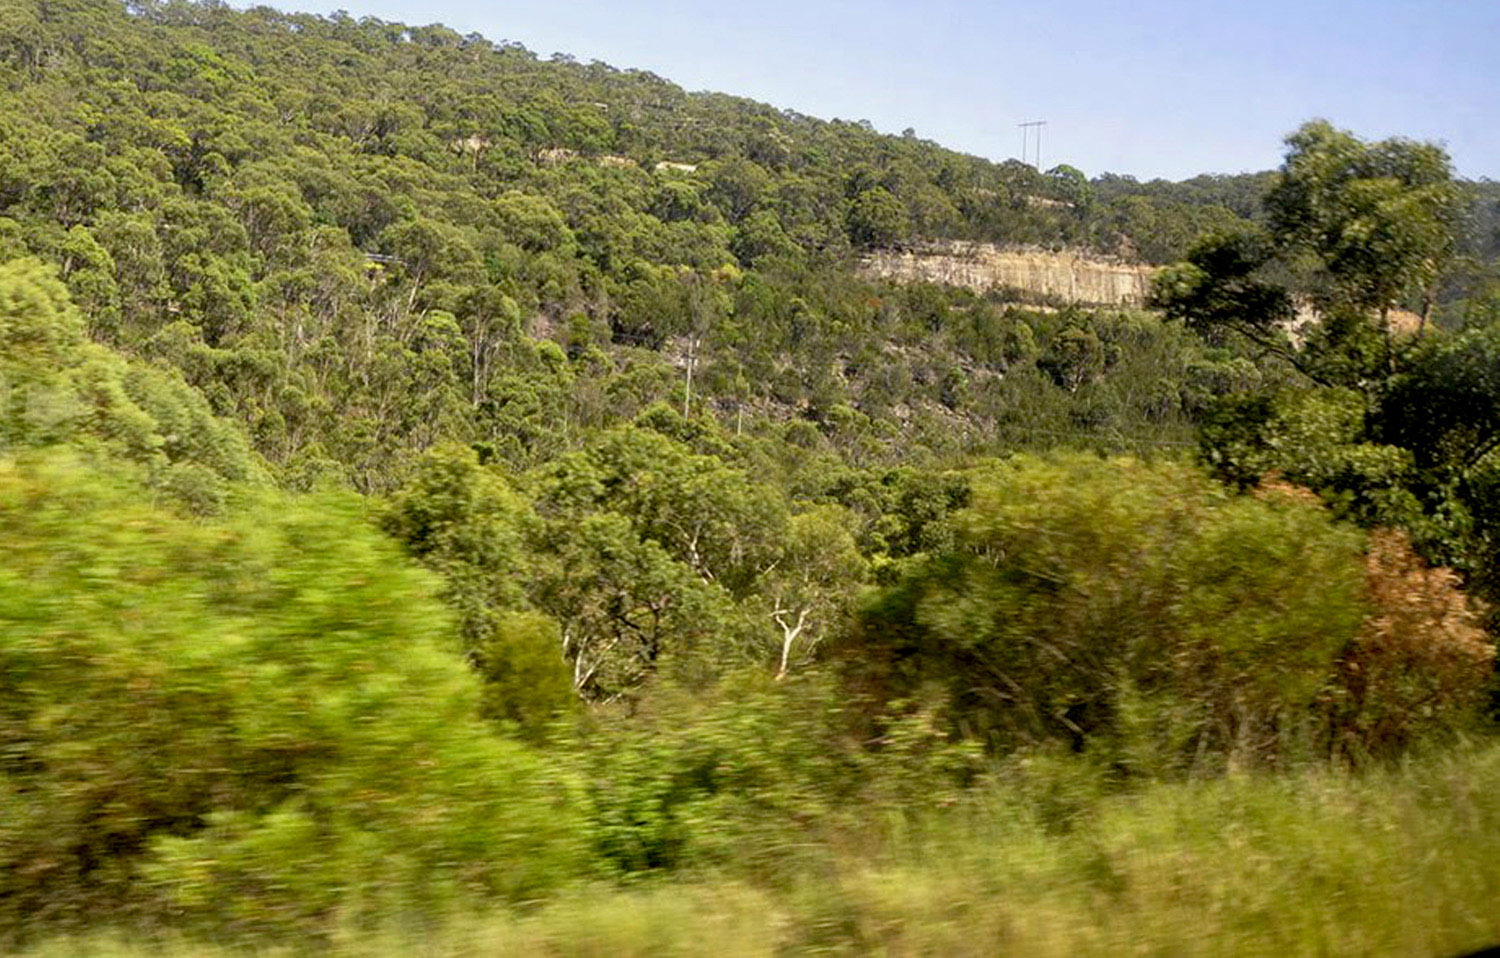 3- Slope 14667_3 from train - m_claude.jpg